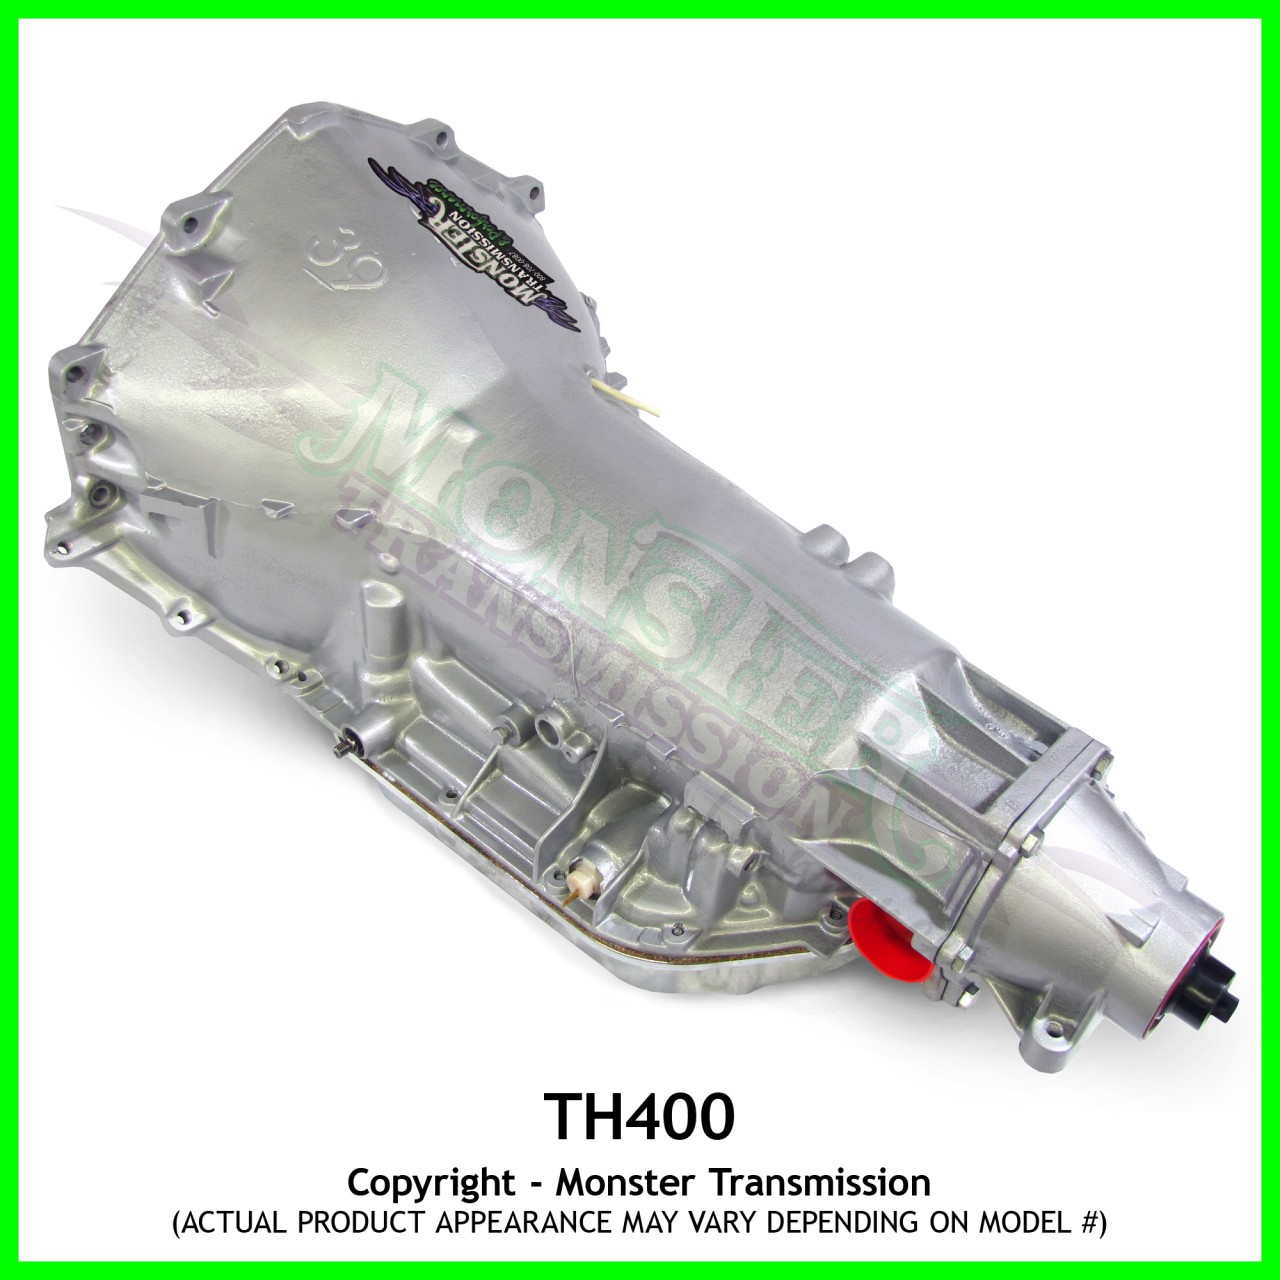 hight resolution of turbo 400 th400 transmission high performance race transmission 4 tail racing th400 race th400 racing turbo 400 performance th400